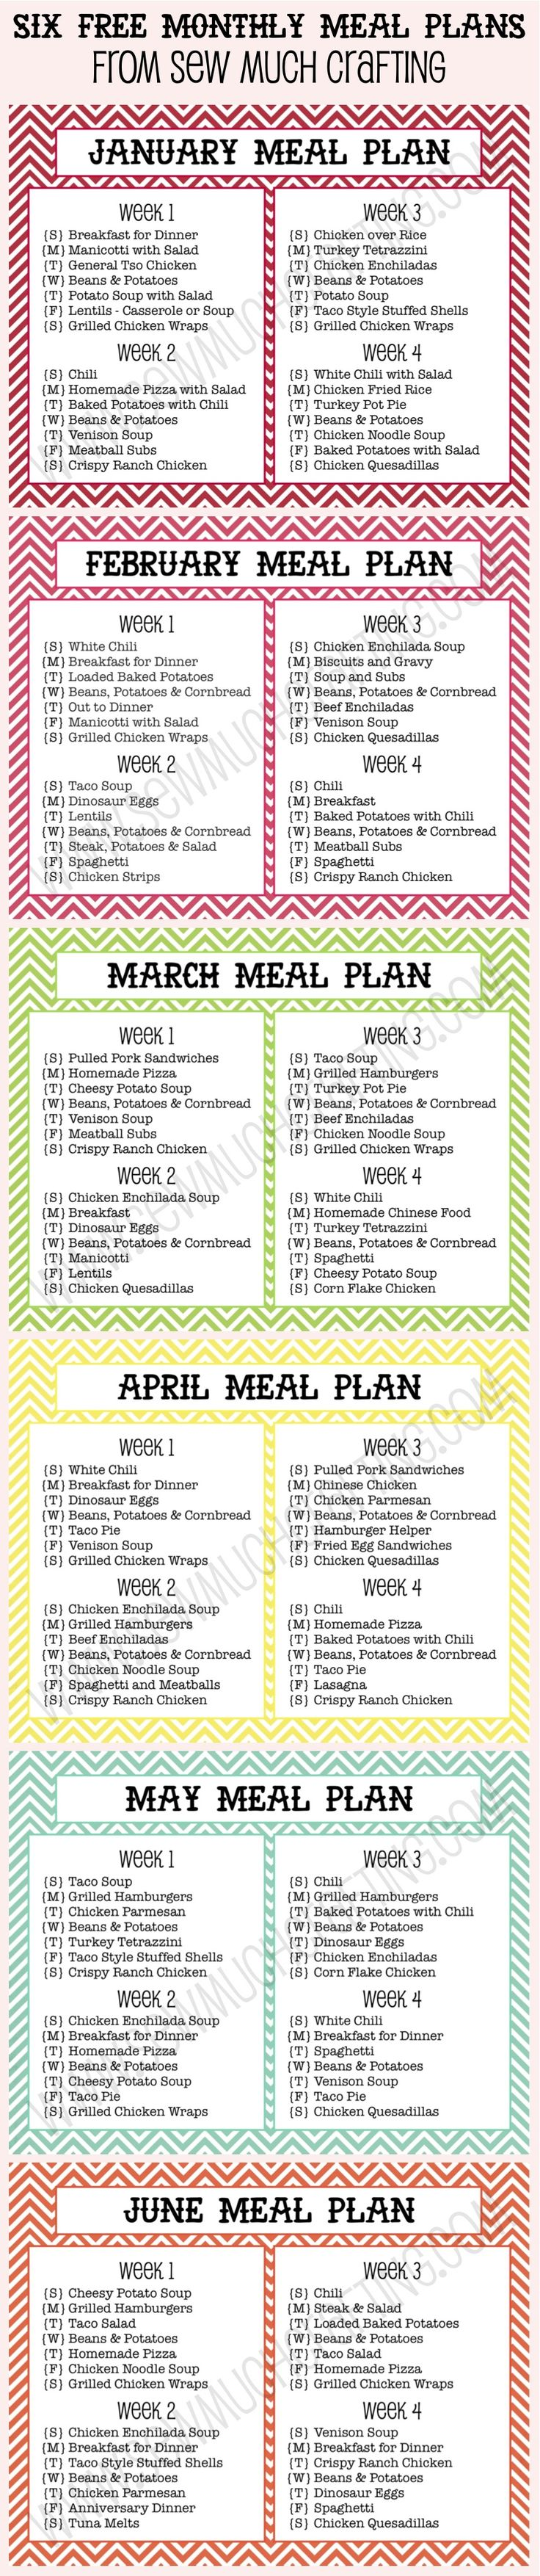 chrome herats Six FREE Monthly Meal Plan Printables